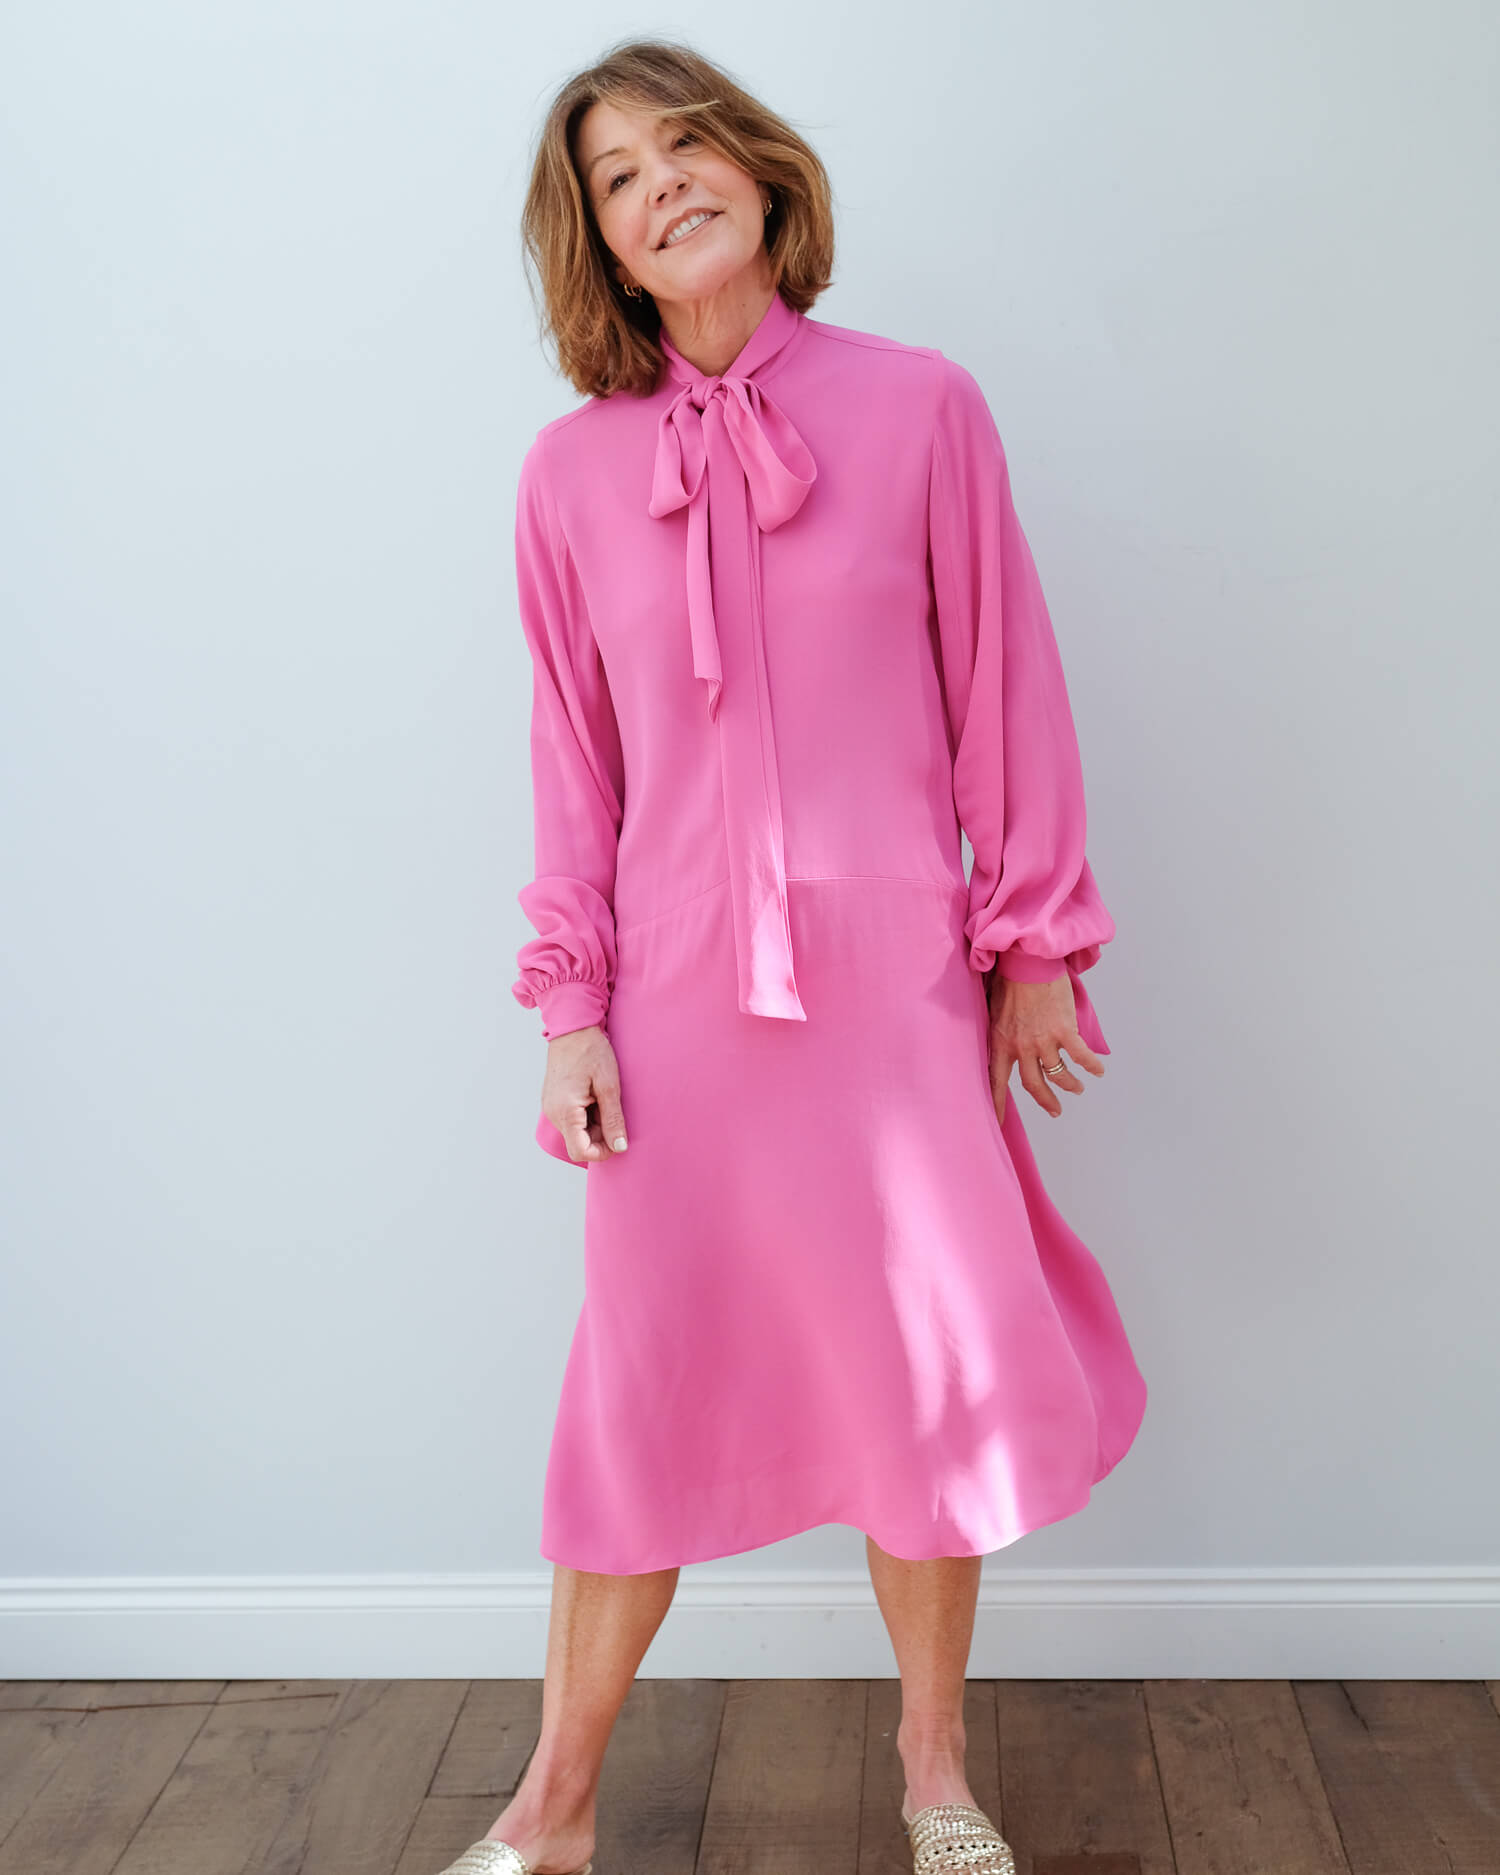 BMB Niccolos dress in pink